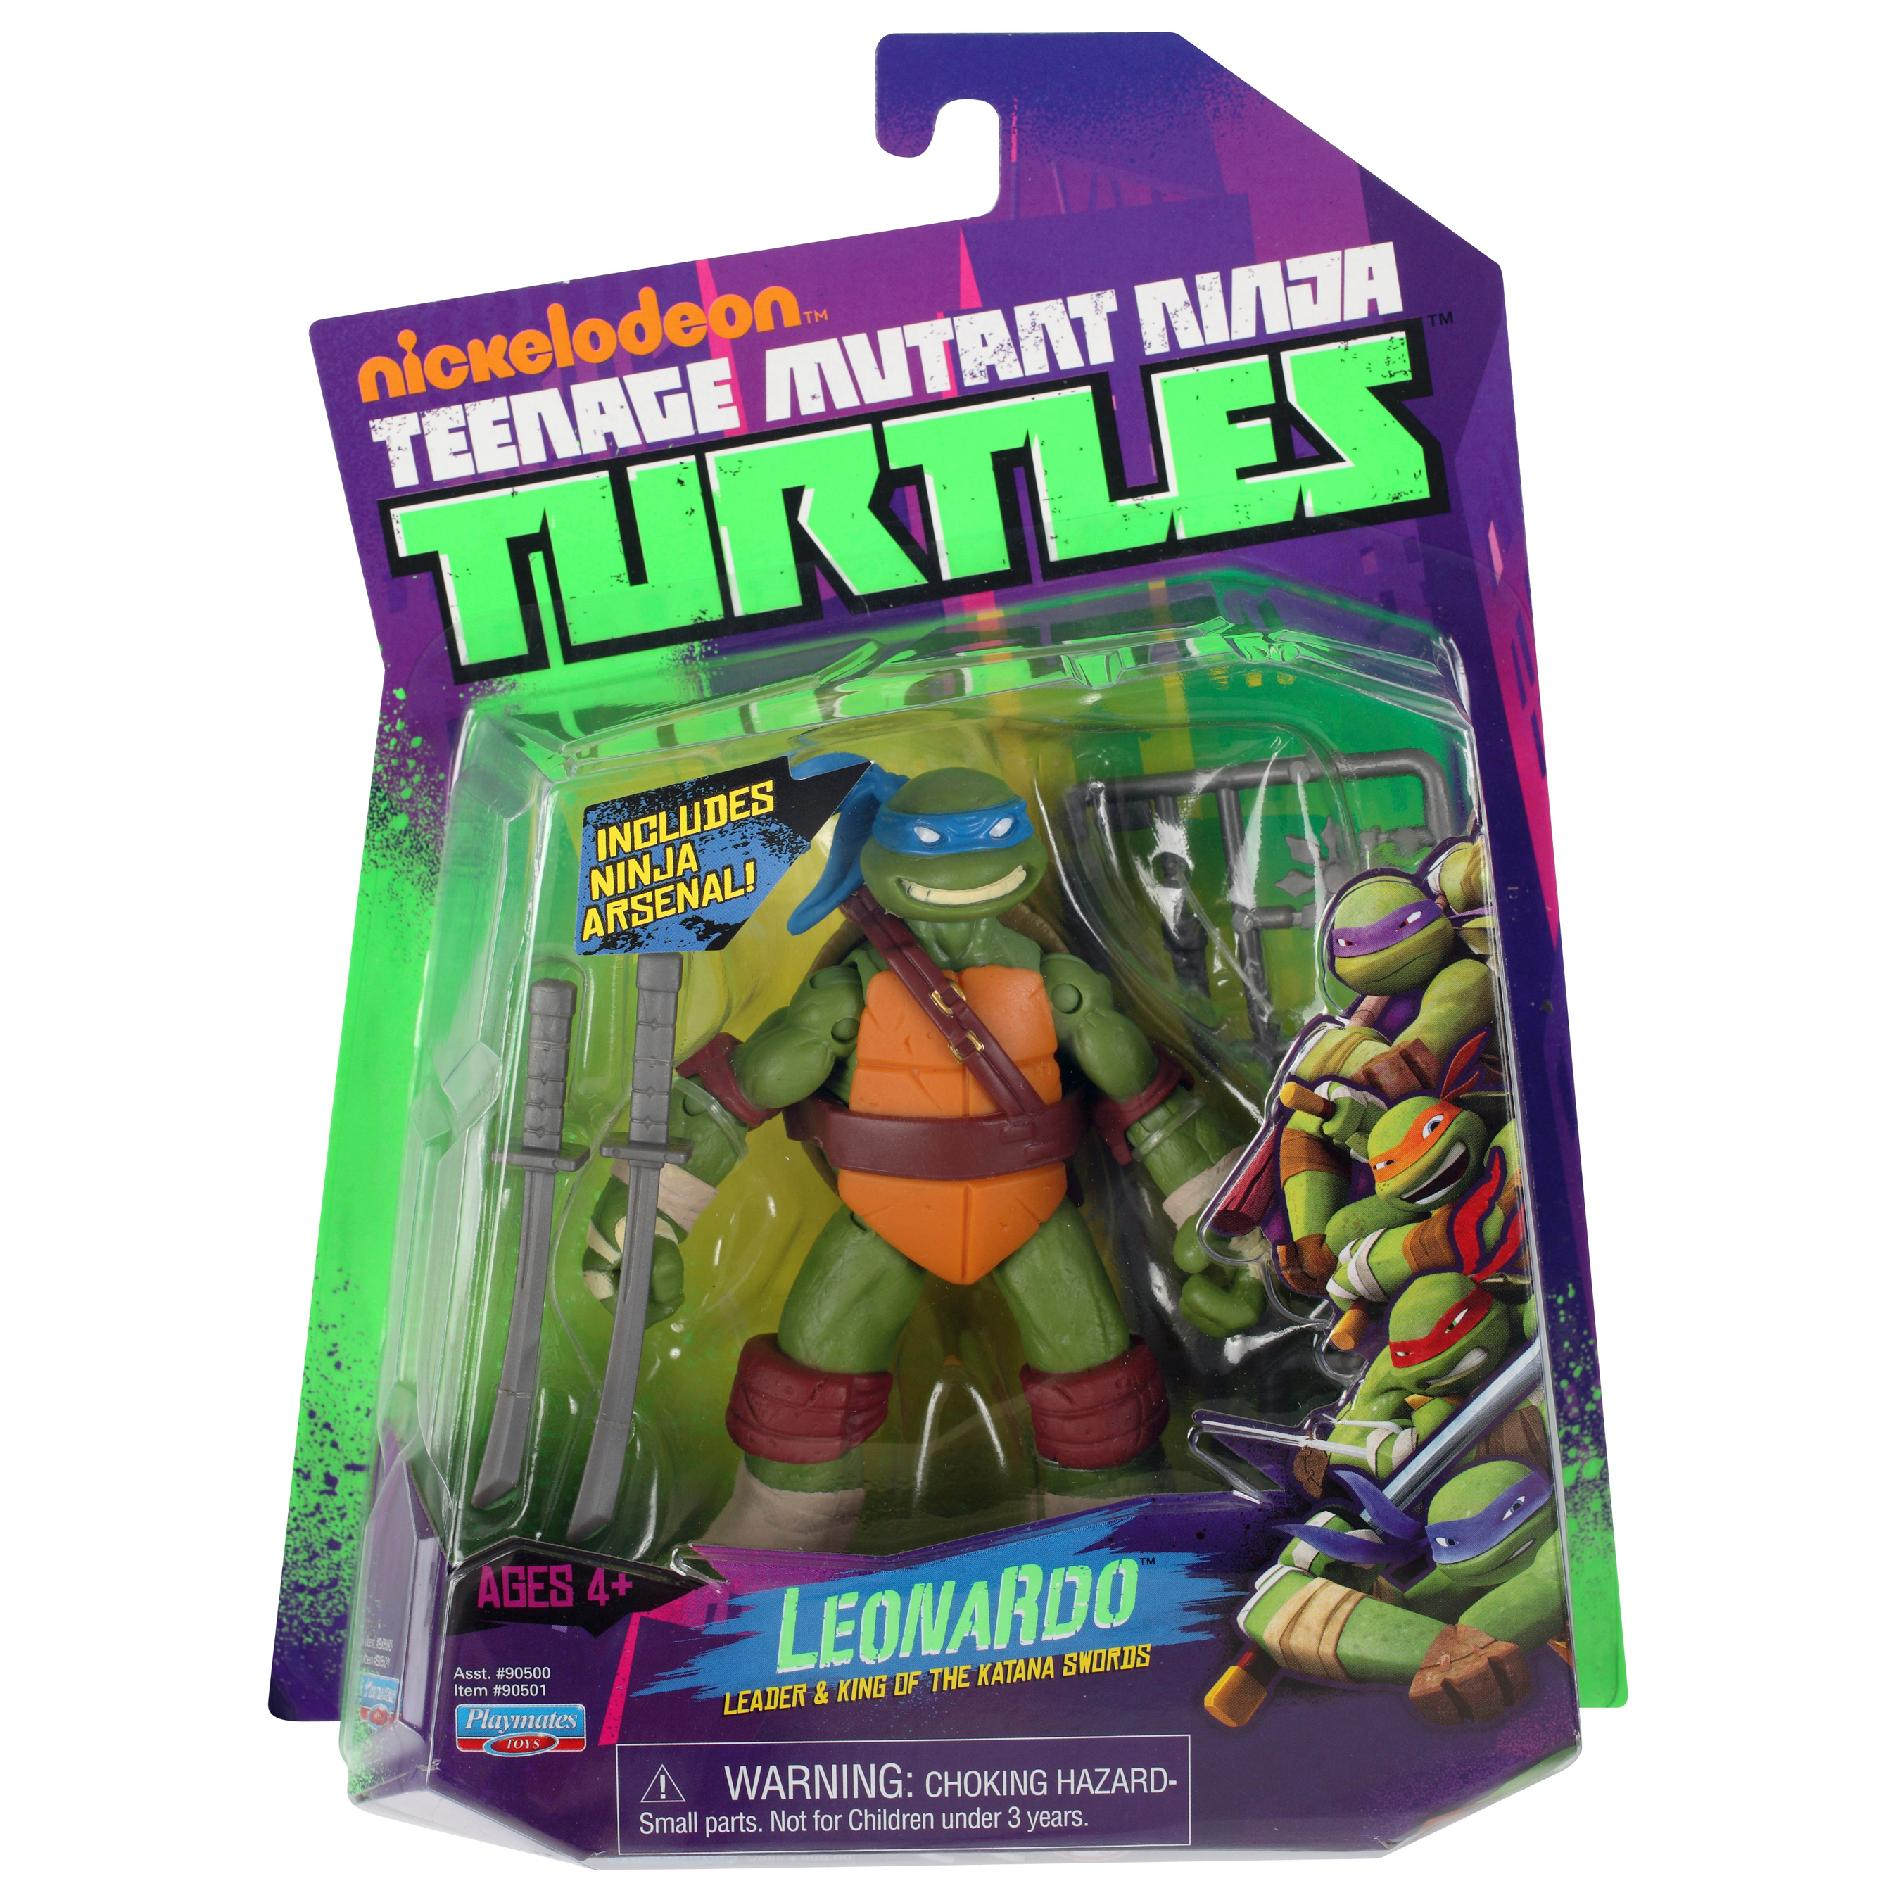 Teenage Mutant Ninja Turtles 2012 Neuralizer Toy : Leonardo action figure tmntpedia fandom powered